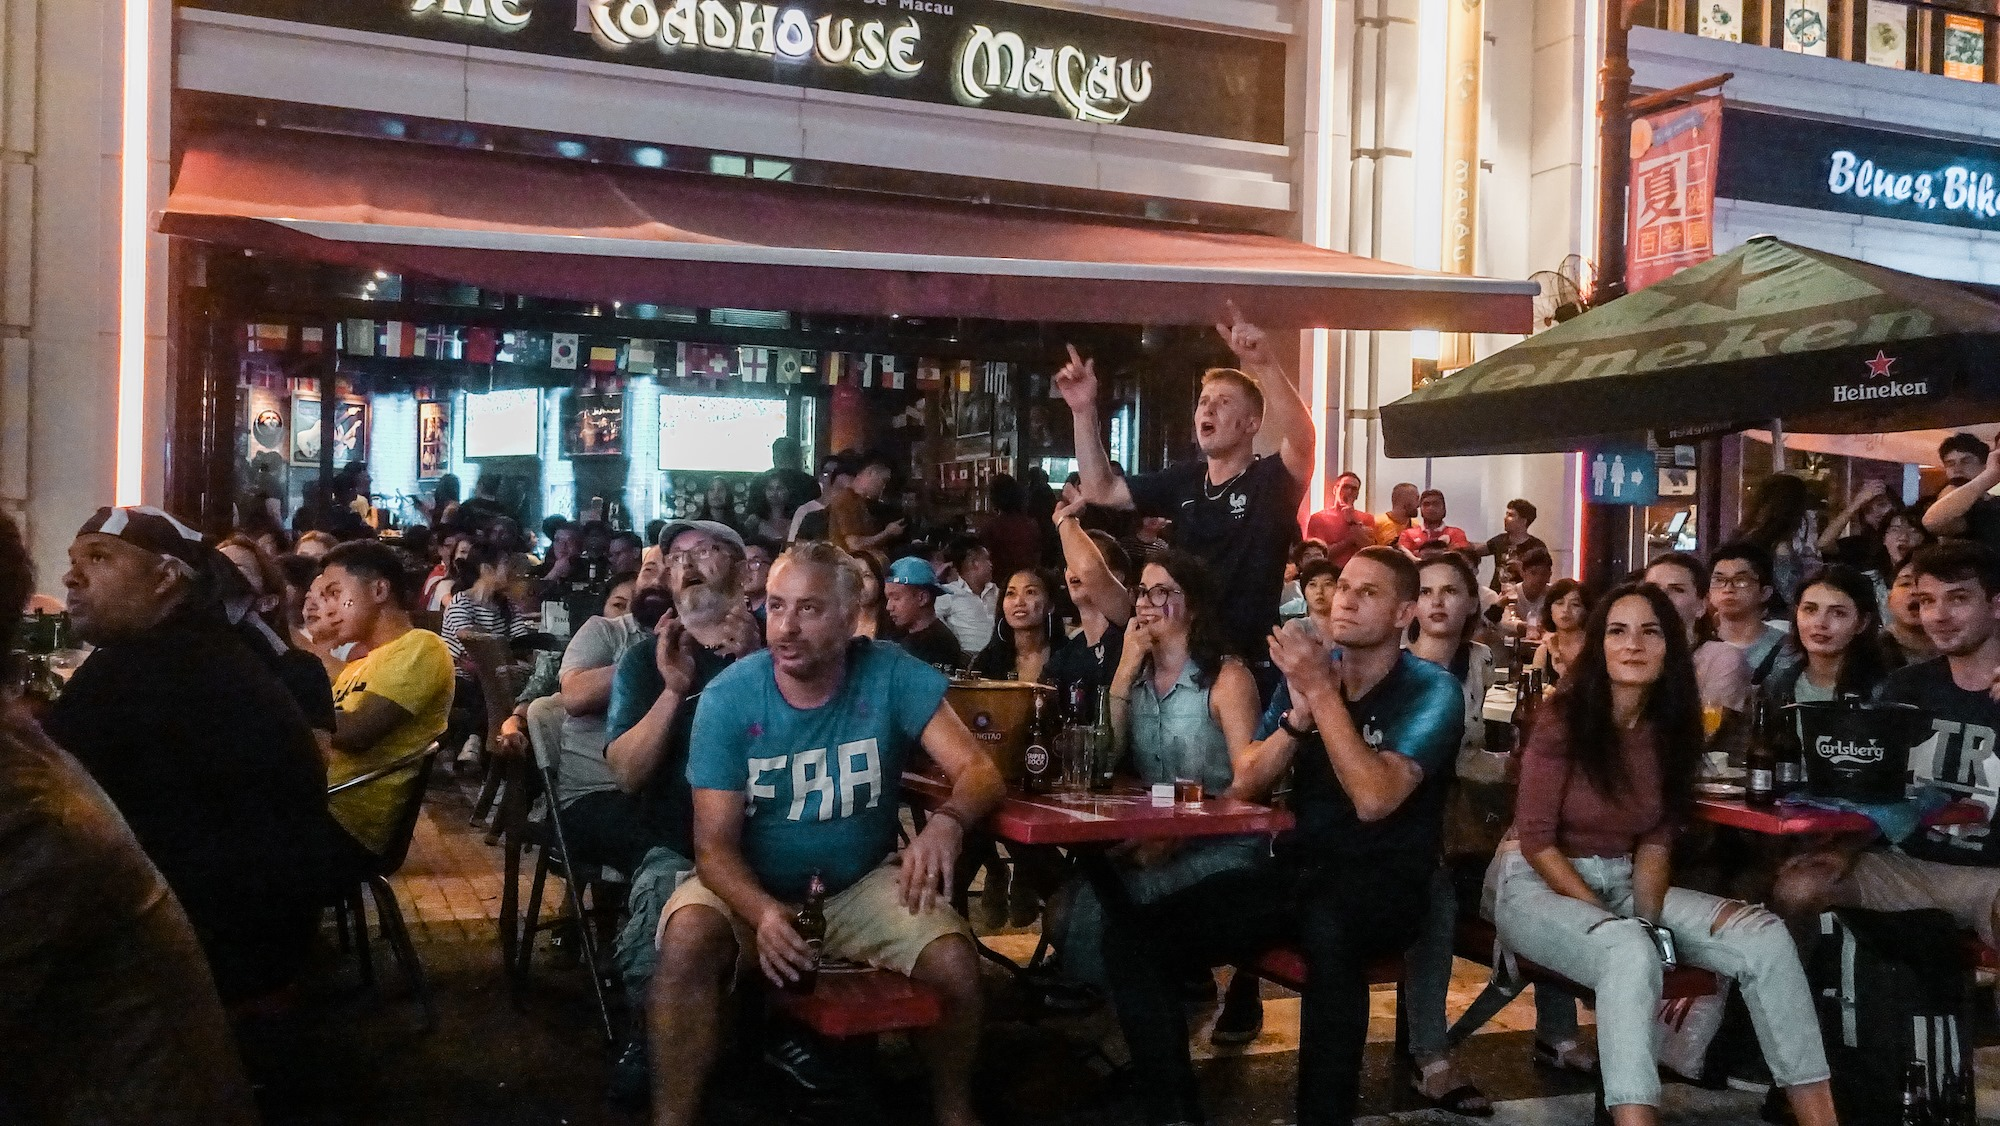 the rugby world cup 2019 at the roadhouse